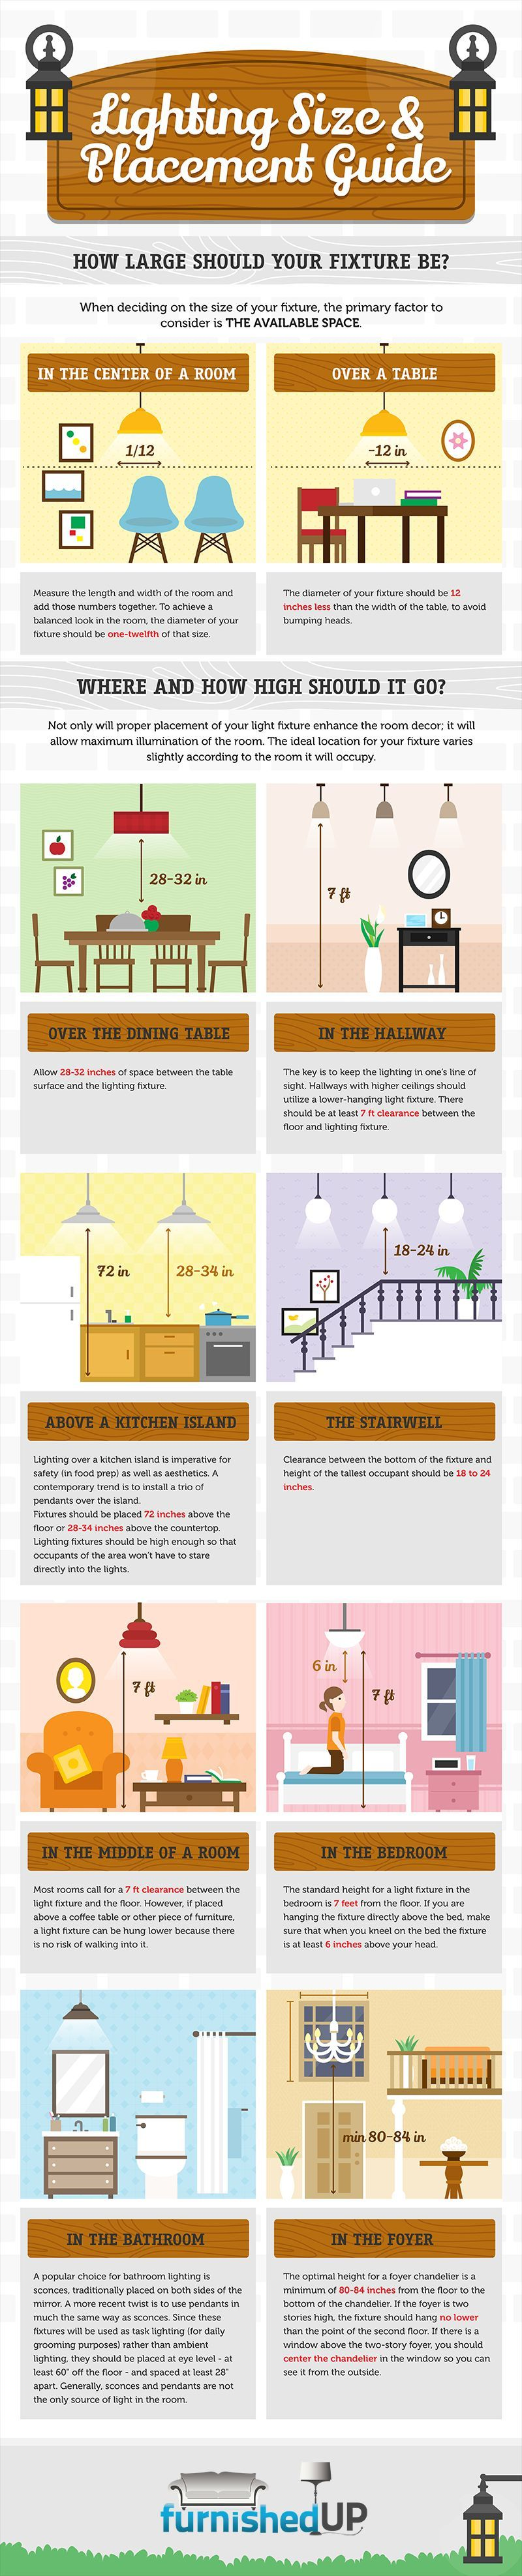 Practical Lighting Size And Placement Guide For Every Corner Of The House Infographic Interior Design Tips Practical Lighting Home Decor Tips